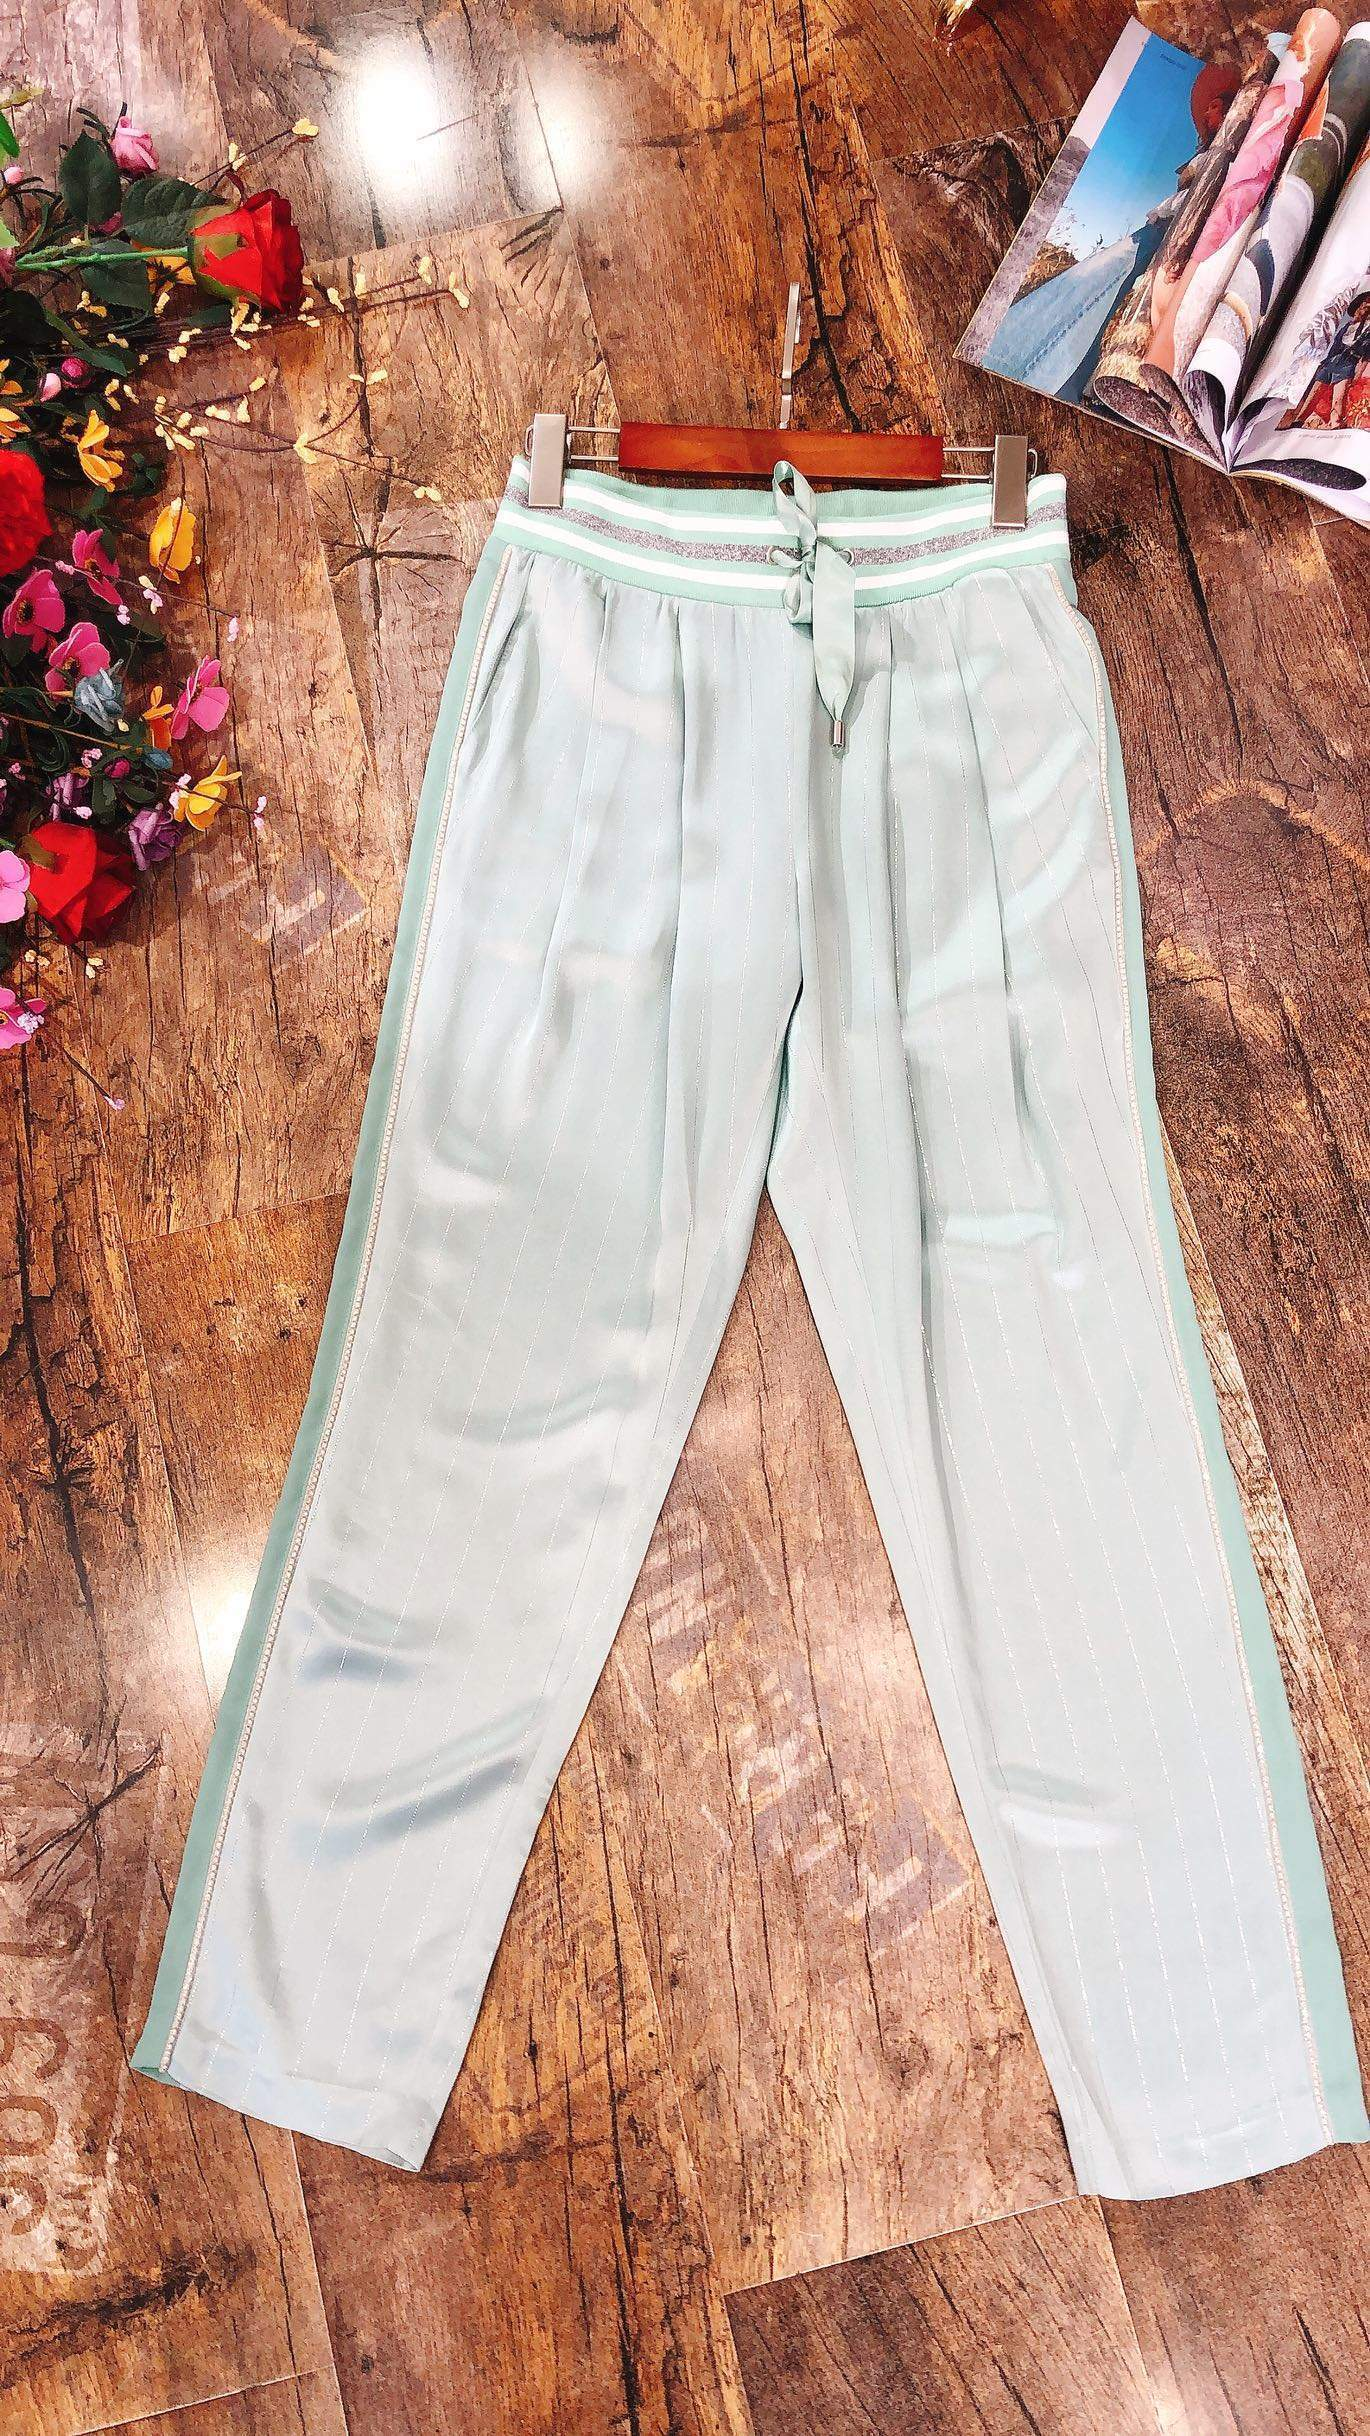 Attinas original high-end custom fabric with diamond stitching, heavy embroidery, bright thread and ankle casual pants for women